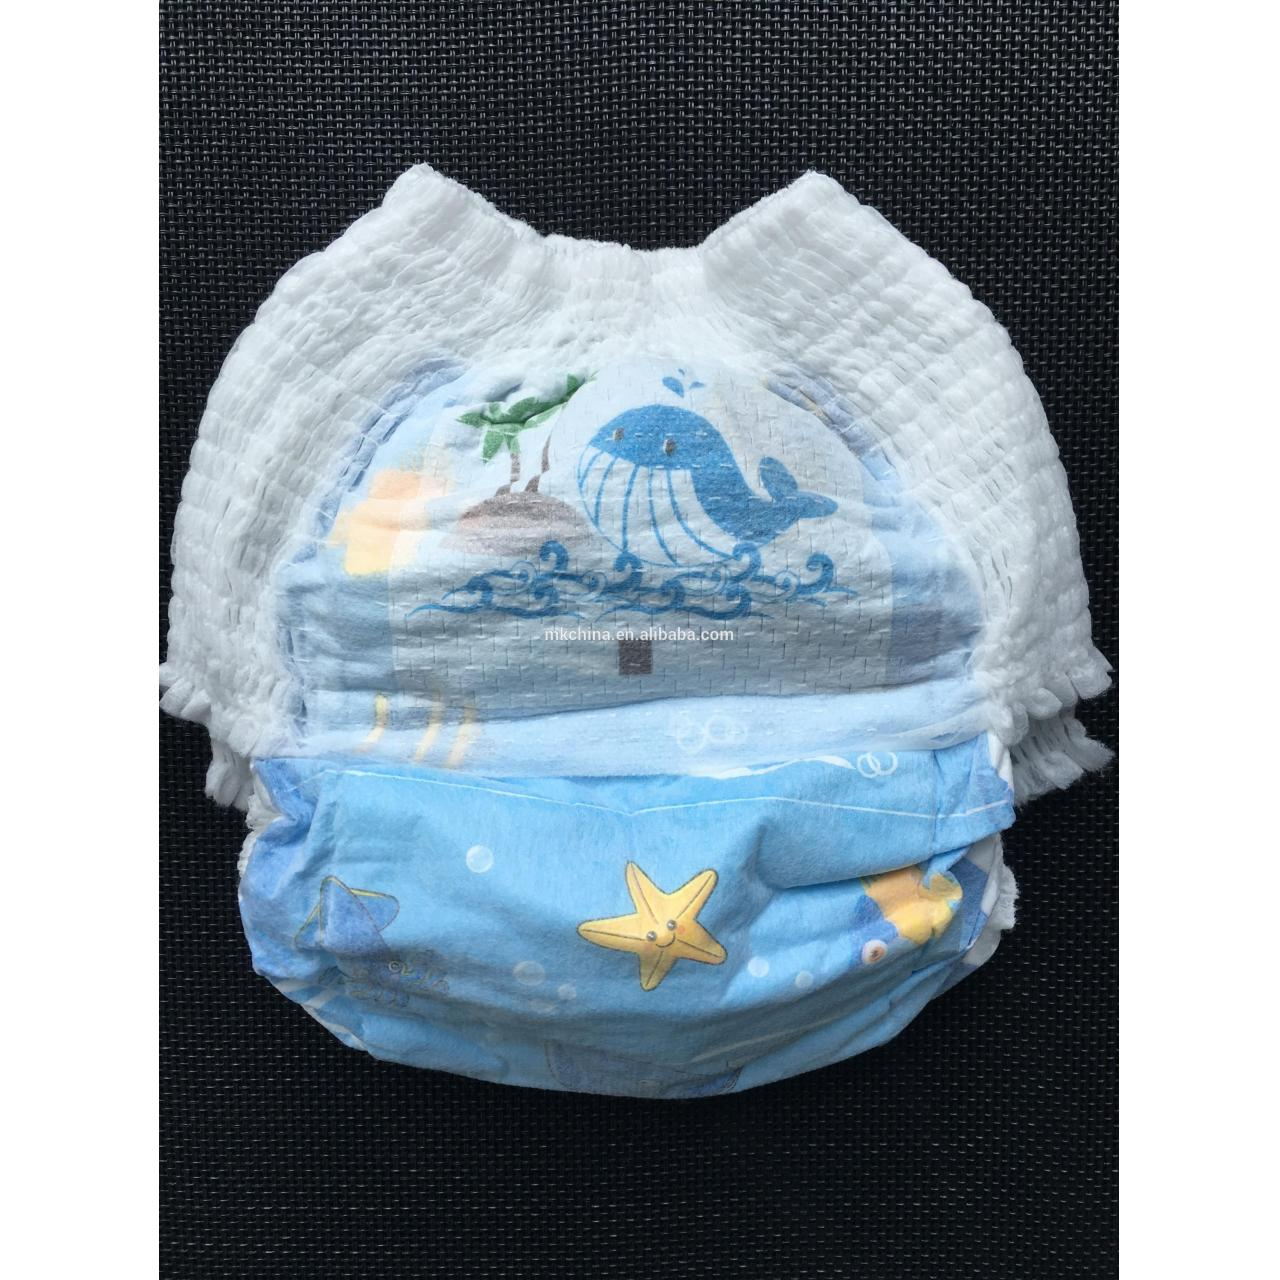 Wholesale soft disposable baby diapers nappies with elastic tape in china from china suppliers